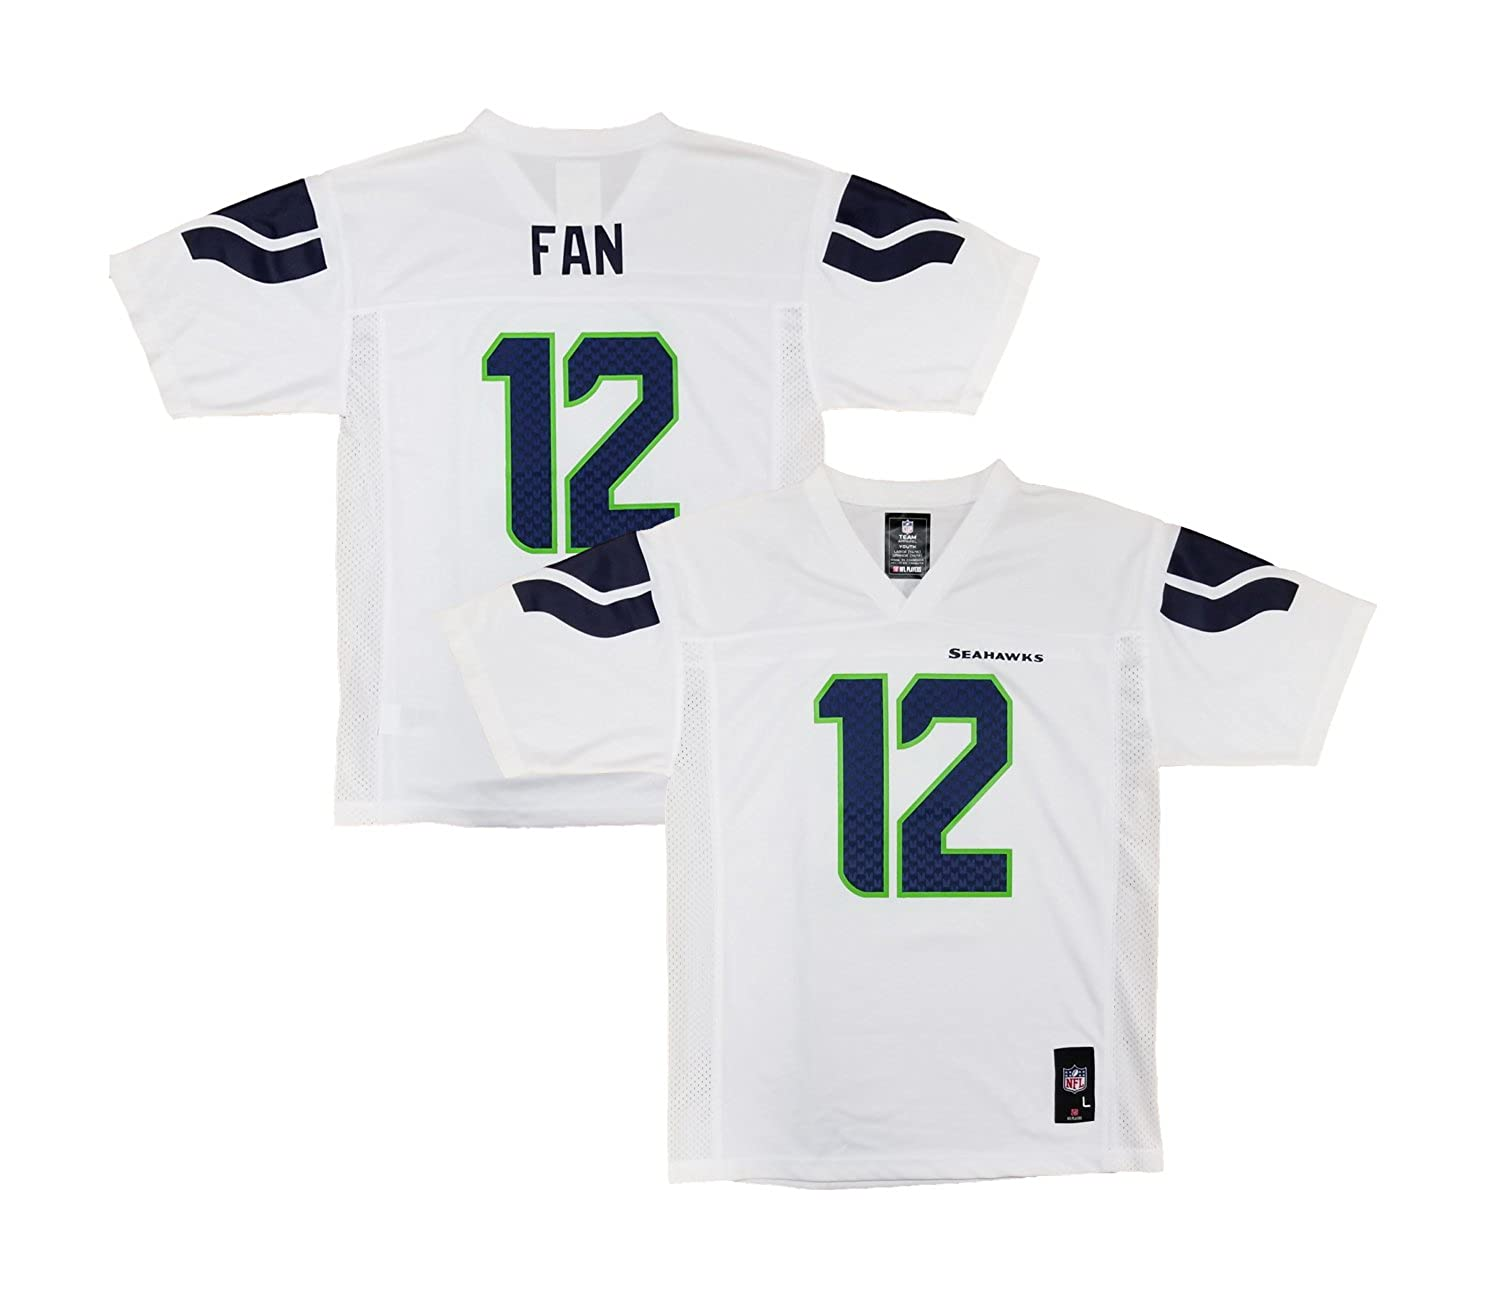 outlet store abc49 fccb3 Amazon.com: Outerstuff Fan 12 Seattle Seahawks White Home ...